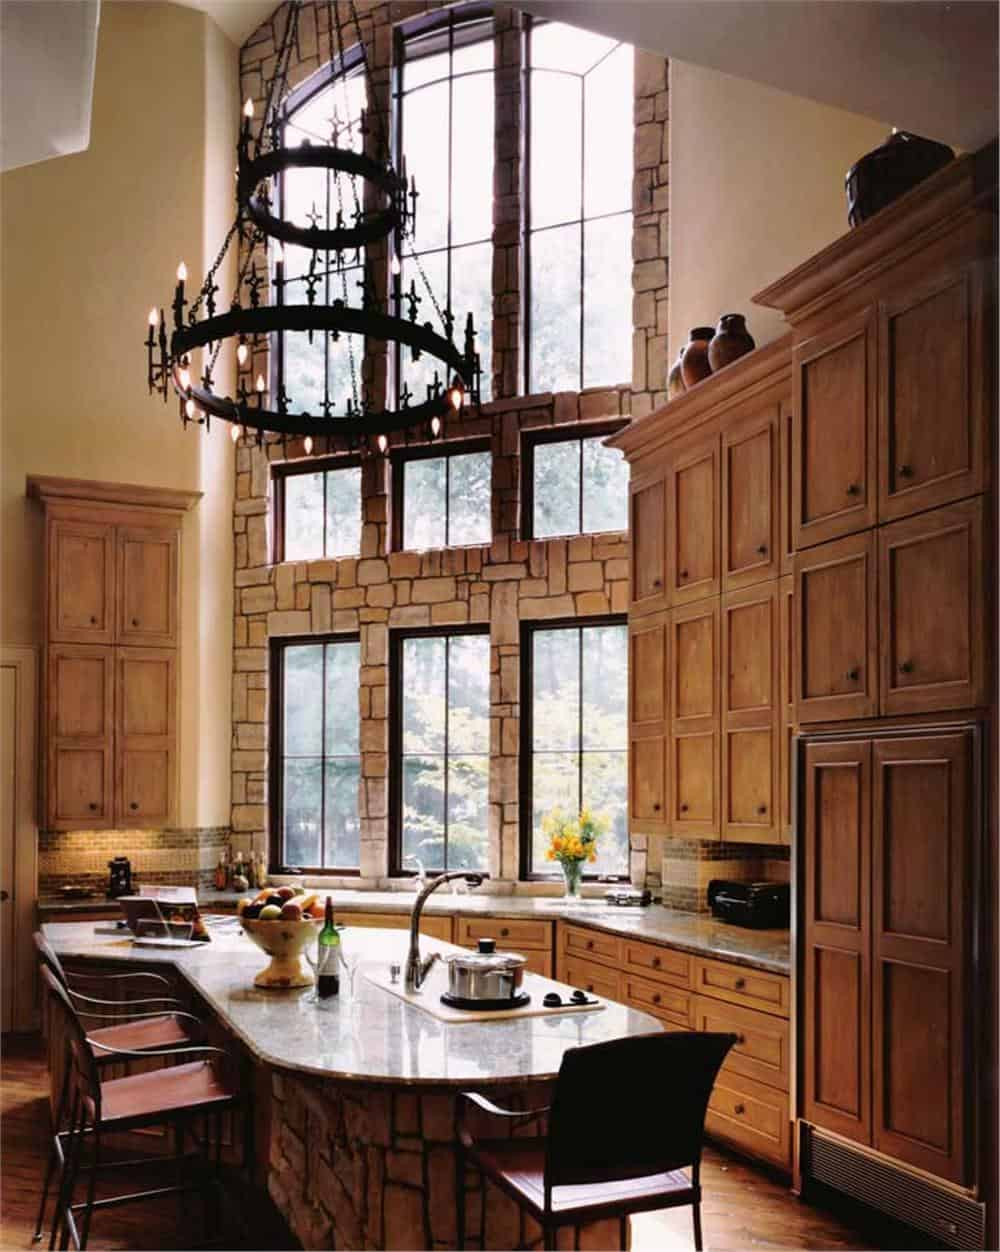 Rustic, European-style kitchen with impressive chandelier